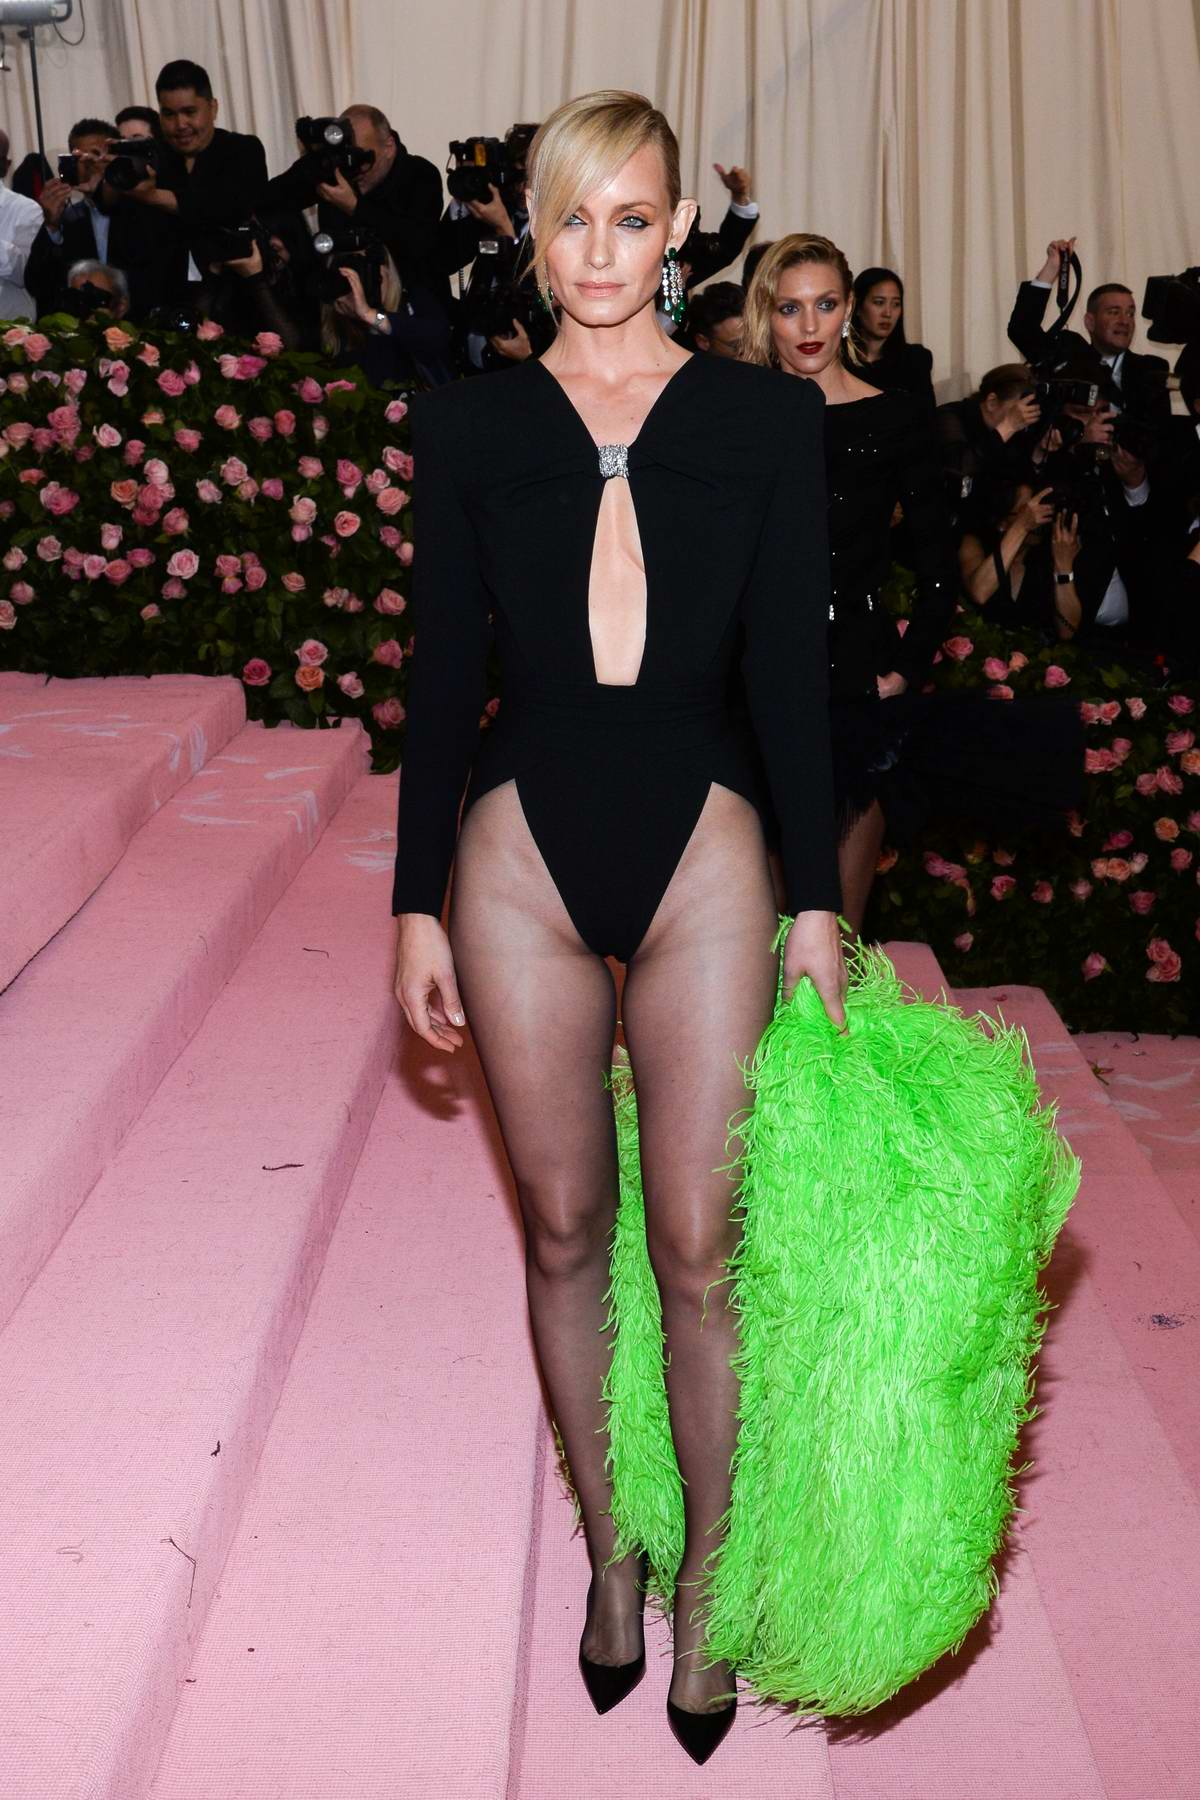 Amber Valletta attends The 2019 Met Gala Celebrating Camp: Notes on Fashion in New York City